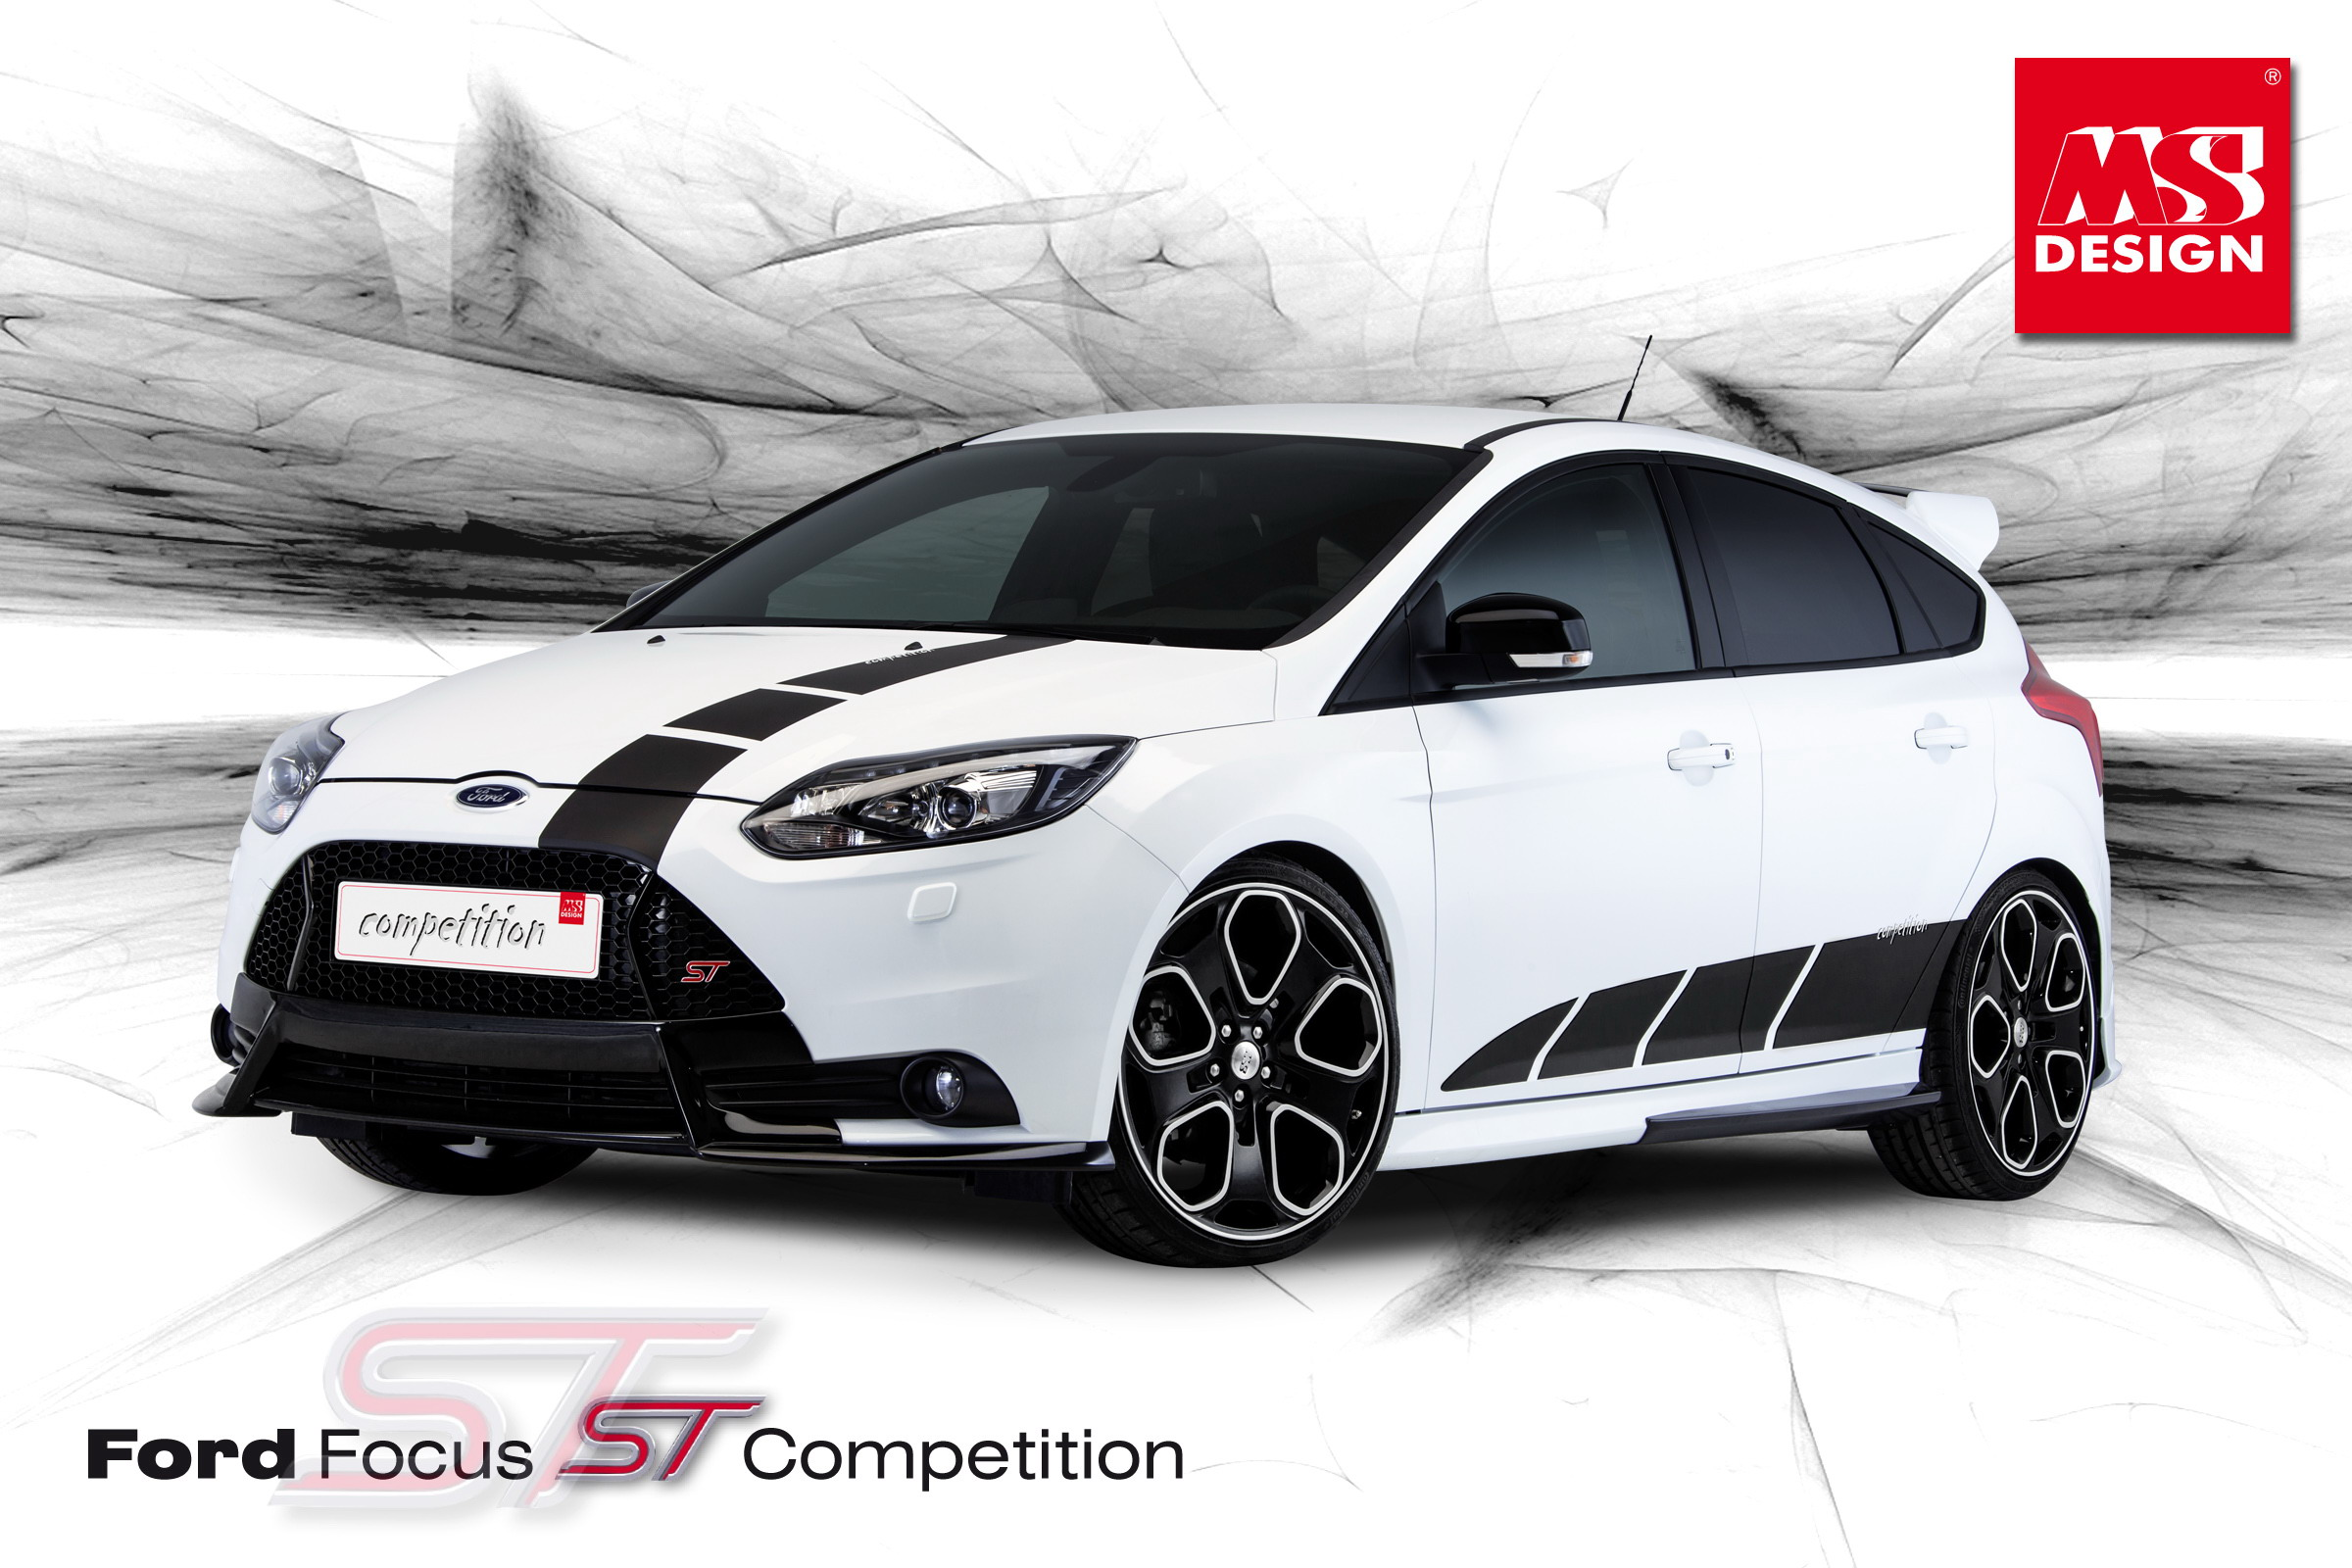 ms design will unveil ford focus st competition kit in geneva news top speed. Black Bedroom Furniture Sets. Home Design Ideas